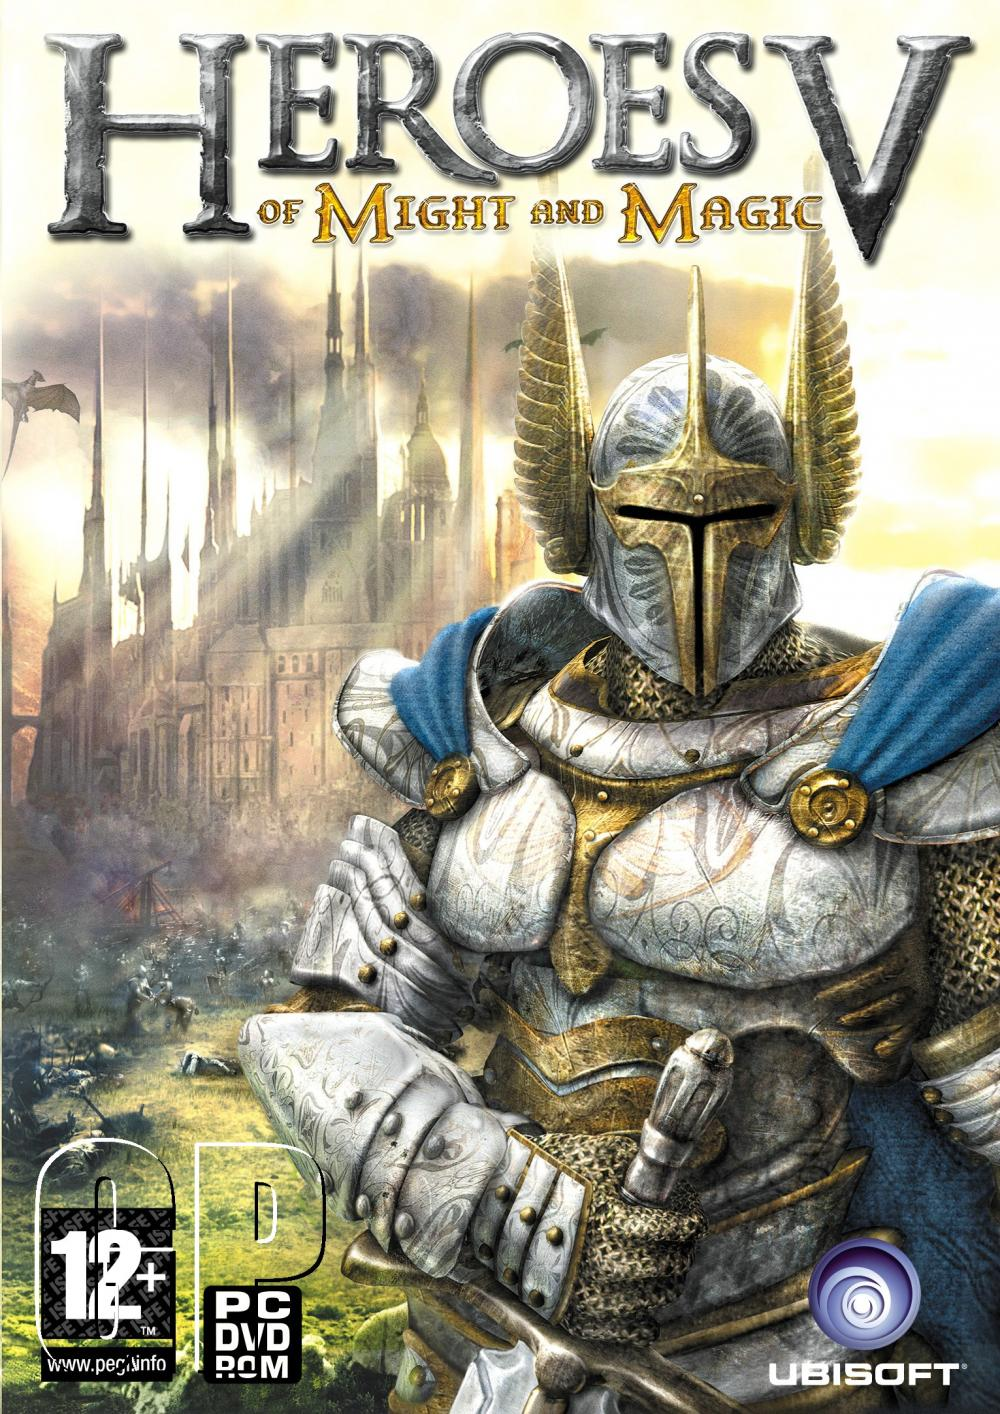 HEROES OF MIGHT & MAGIC PC